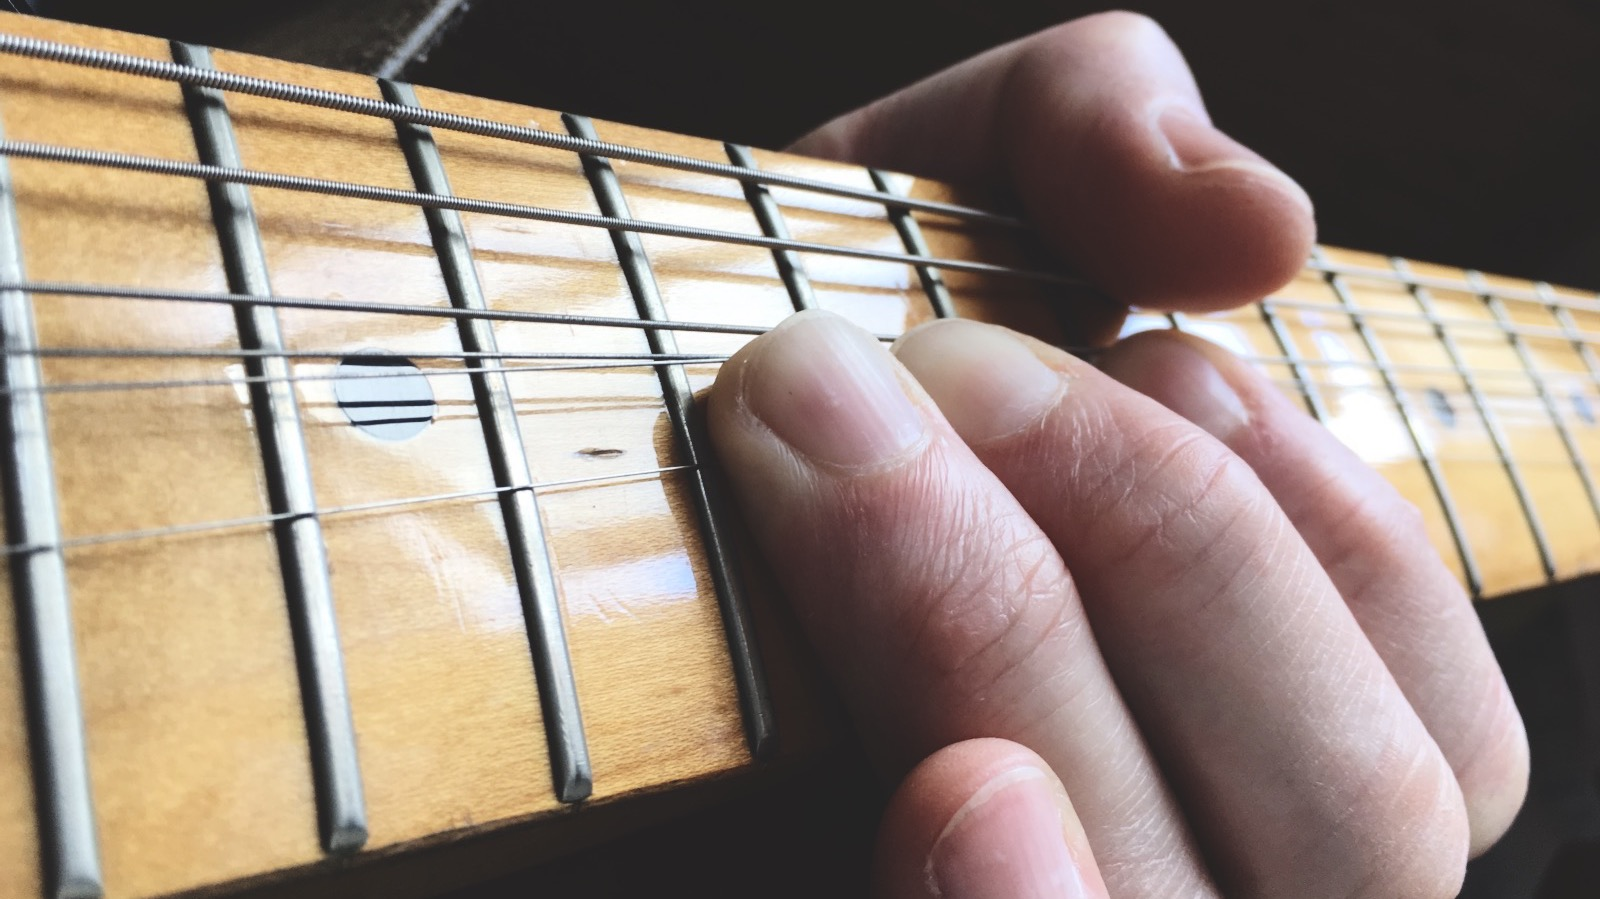 Guitar bends can choke on some instruments. Careful setup compromises can help.